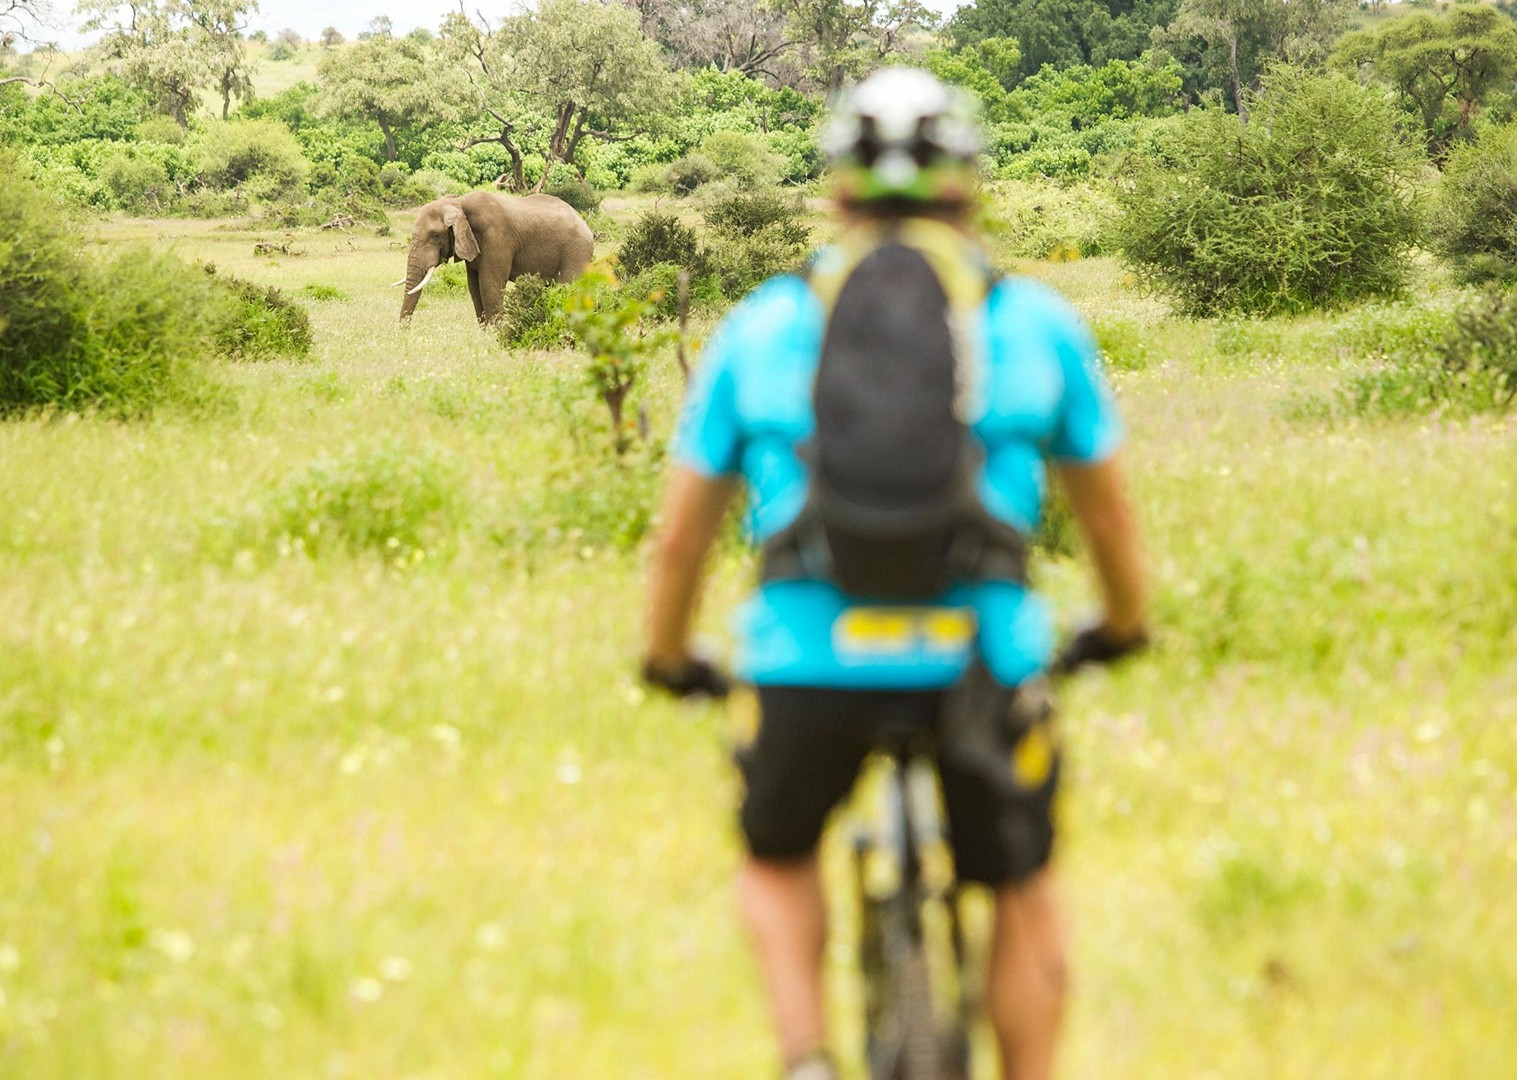 wilderness-south-africa-botswana-mountain-bike-elephants-holiday-saddle-skedaddle.jpg - NEW! South Africa and Botswana - Mountain Biking